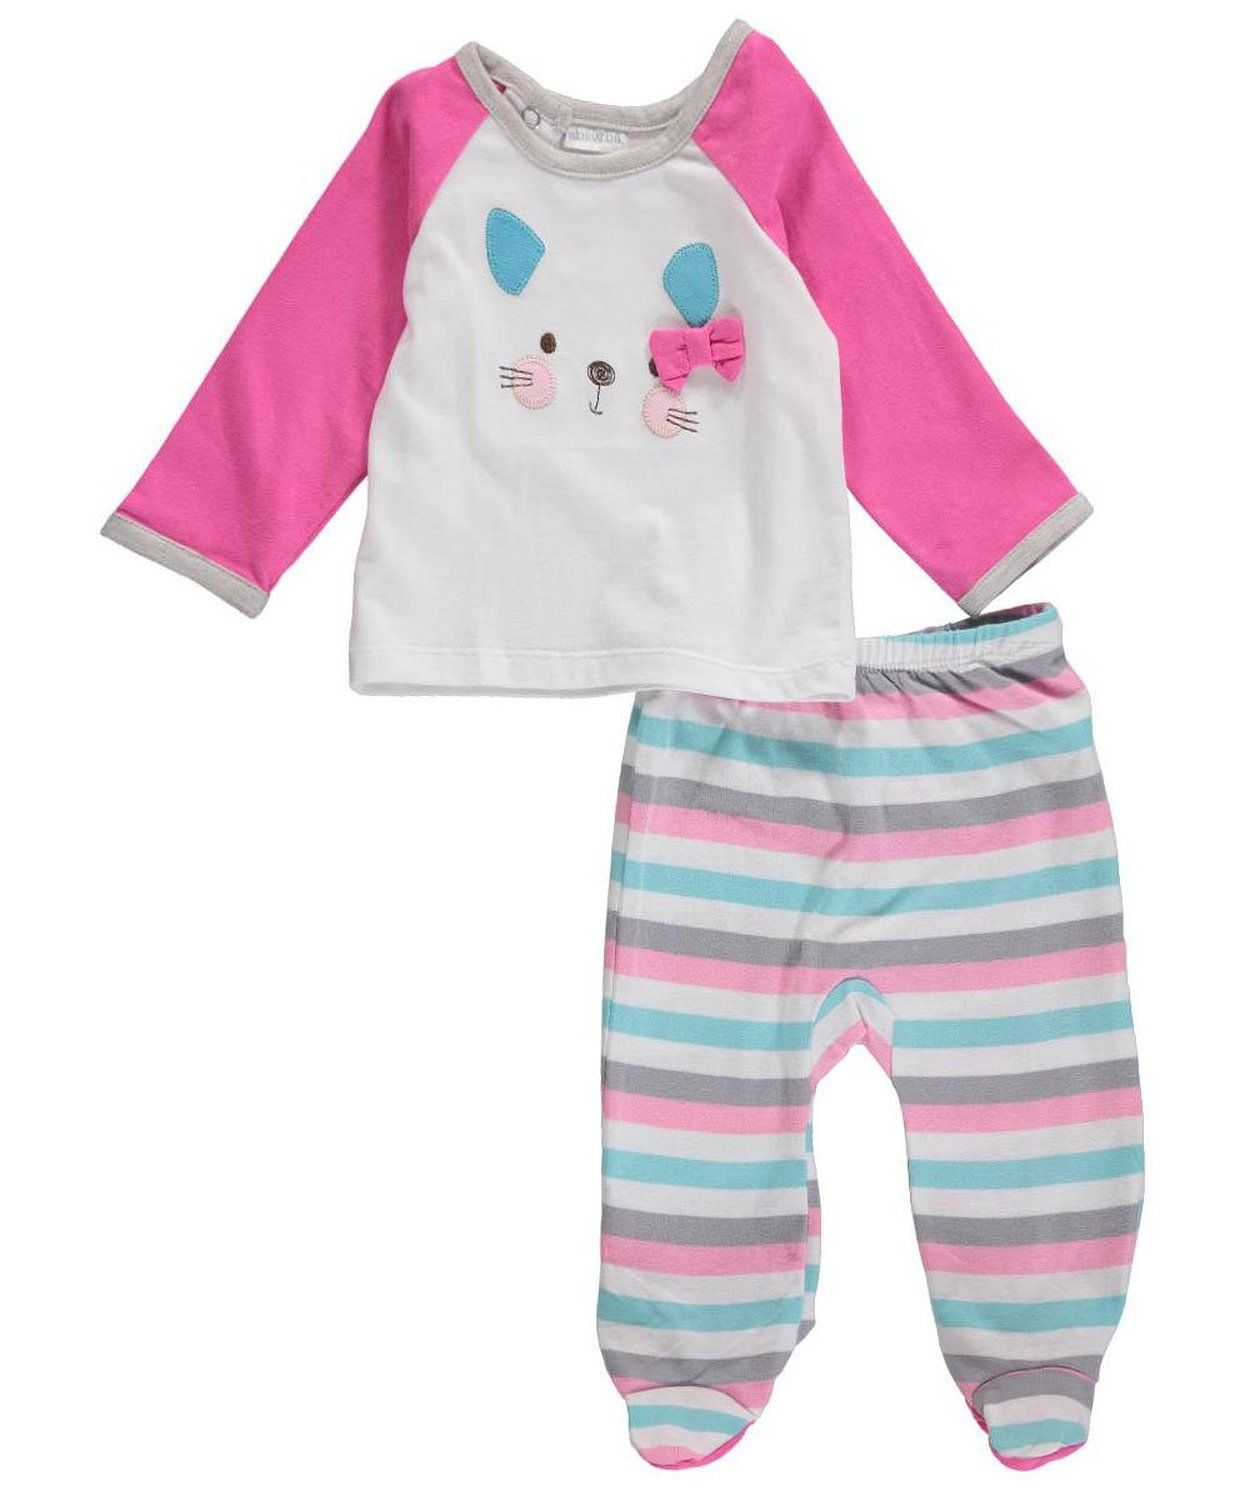 fad98e45a16a Amazon.com  ABSORBA Baby-Girls Newborn Cat Face Footed Pant Set ...